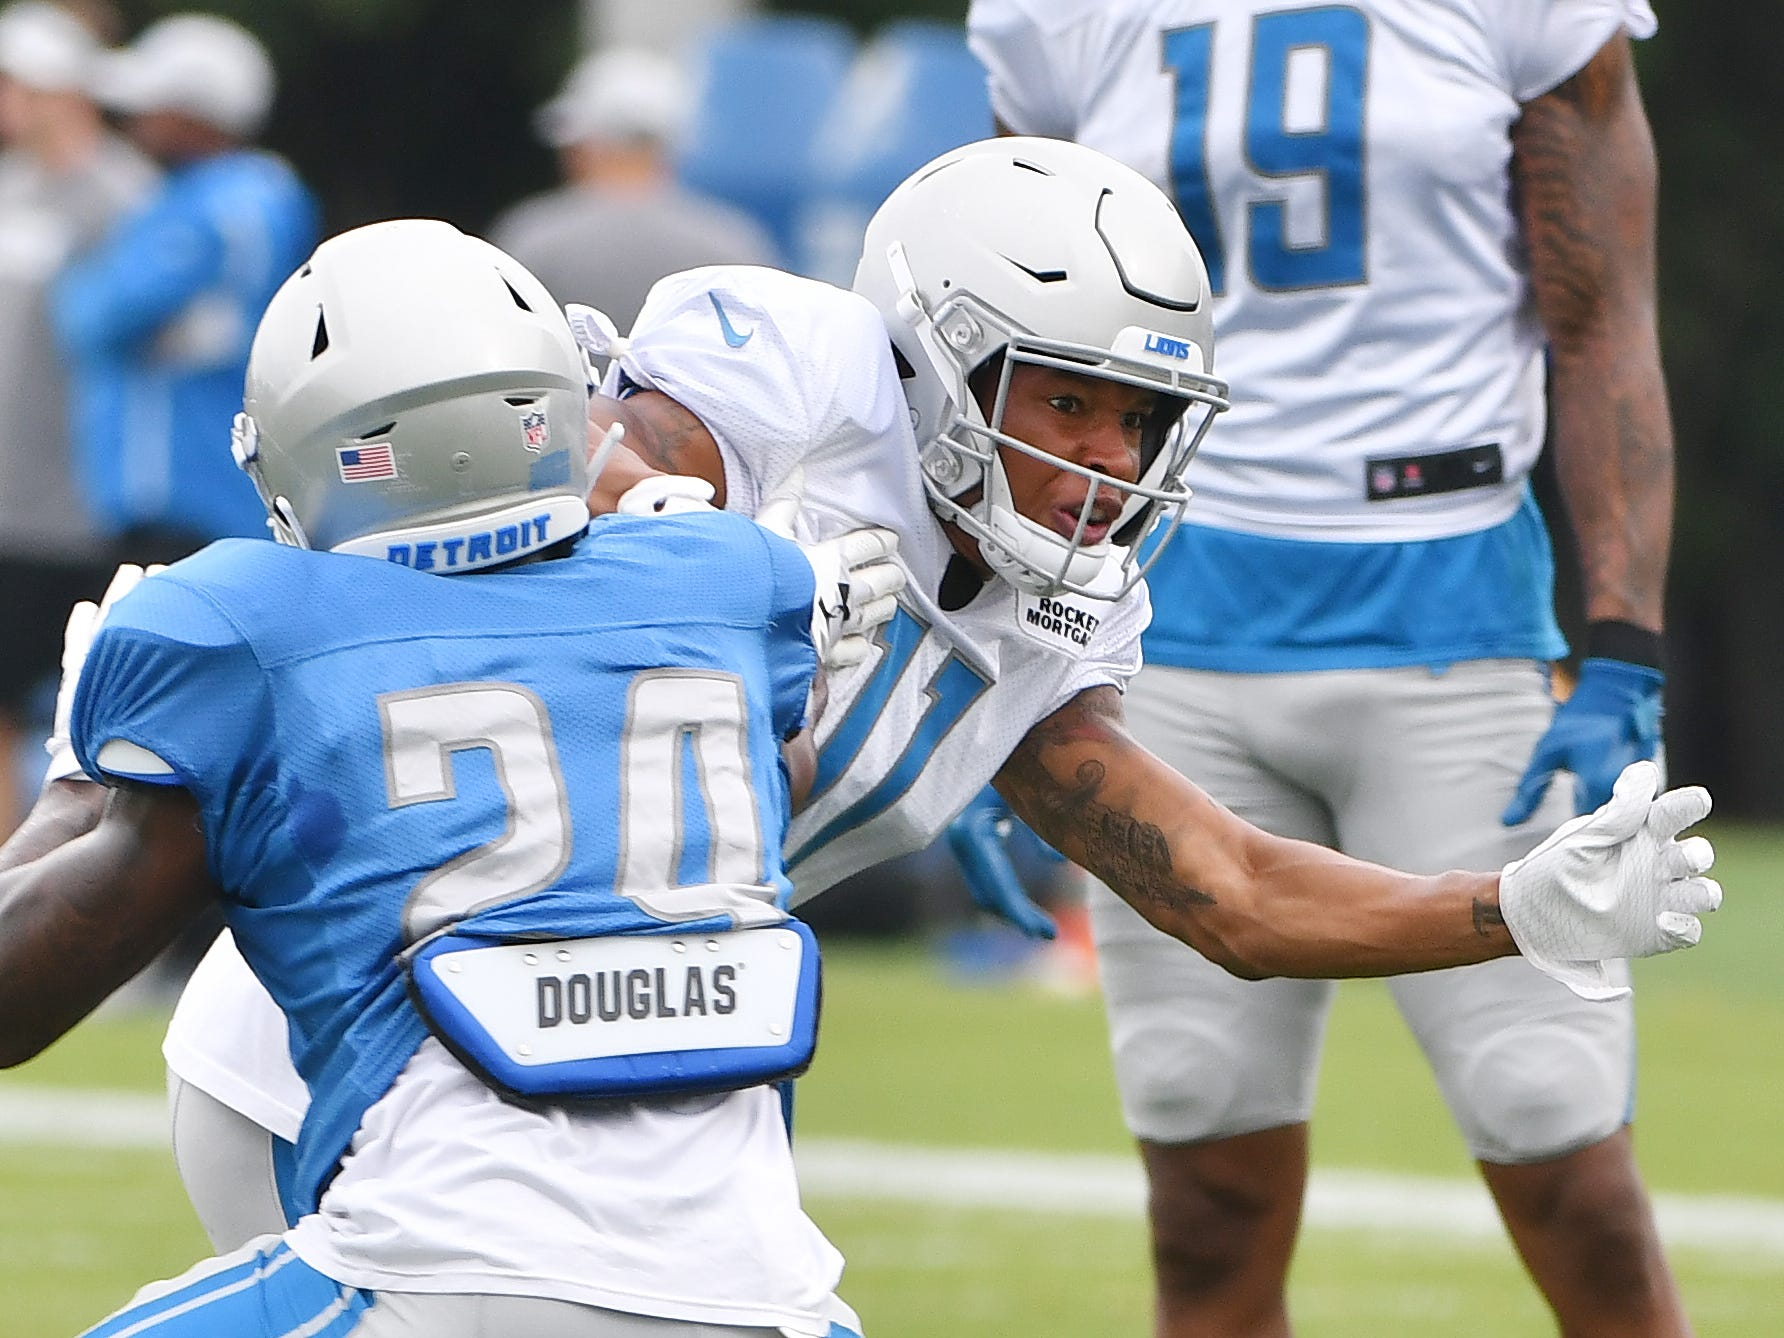 Lions cornerback Kevin Lawson and wide receiver Marvin Jones Jr. work during a drill involving bursting off the line of scrimmage against a defender.